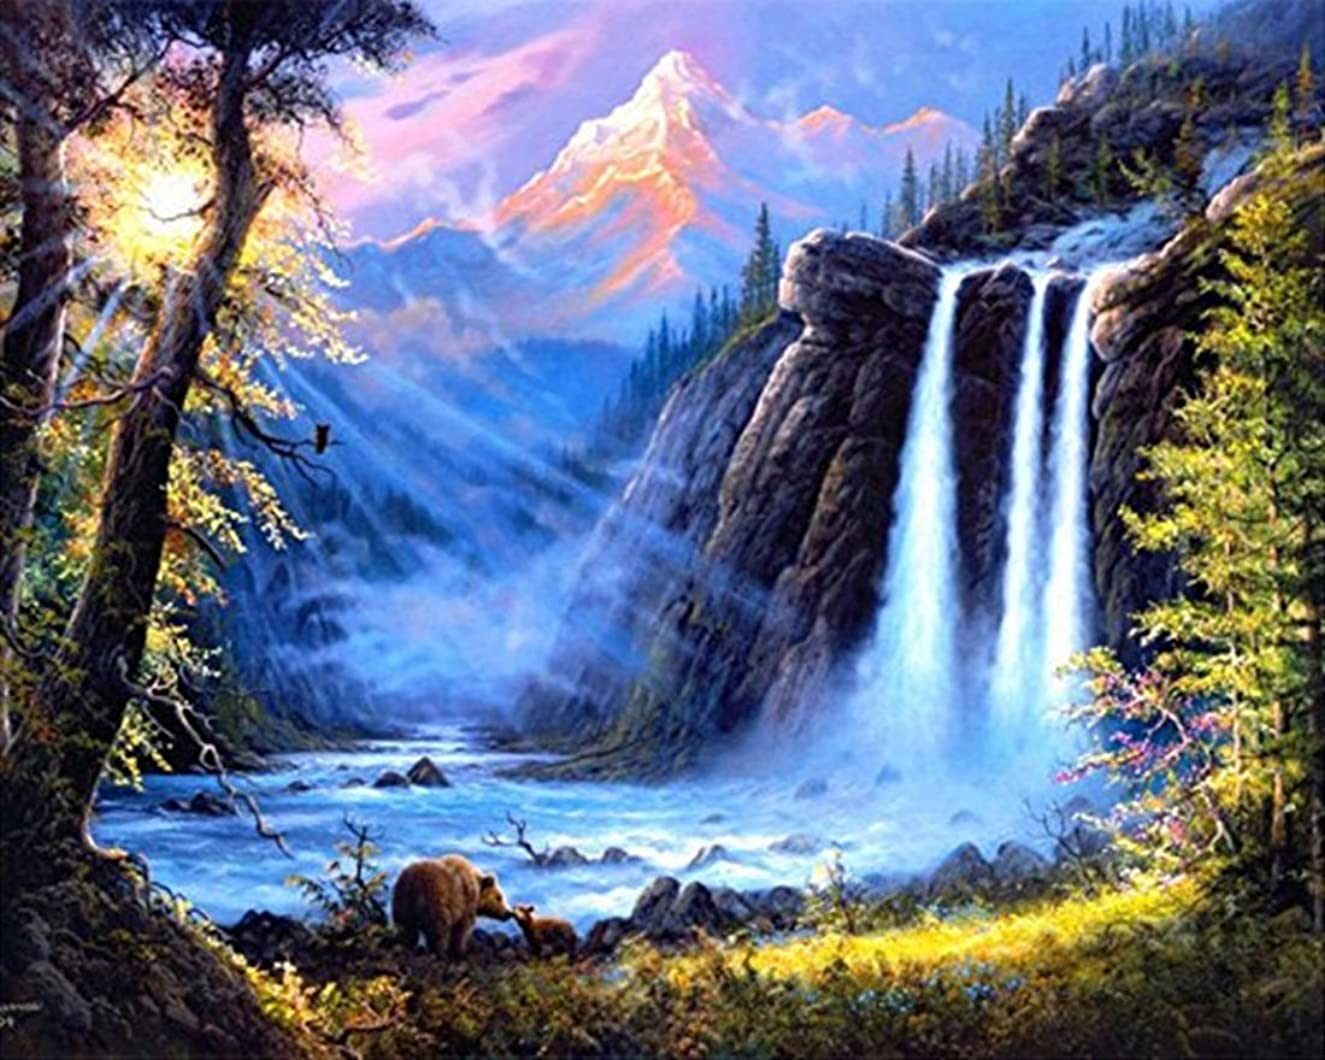 21secret 5D Diamond Diy Painting Full Round Drill Handmade Forest Waterfall Landscape Cross Stitch Home Decor Embroidery Kit